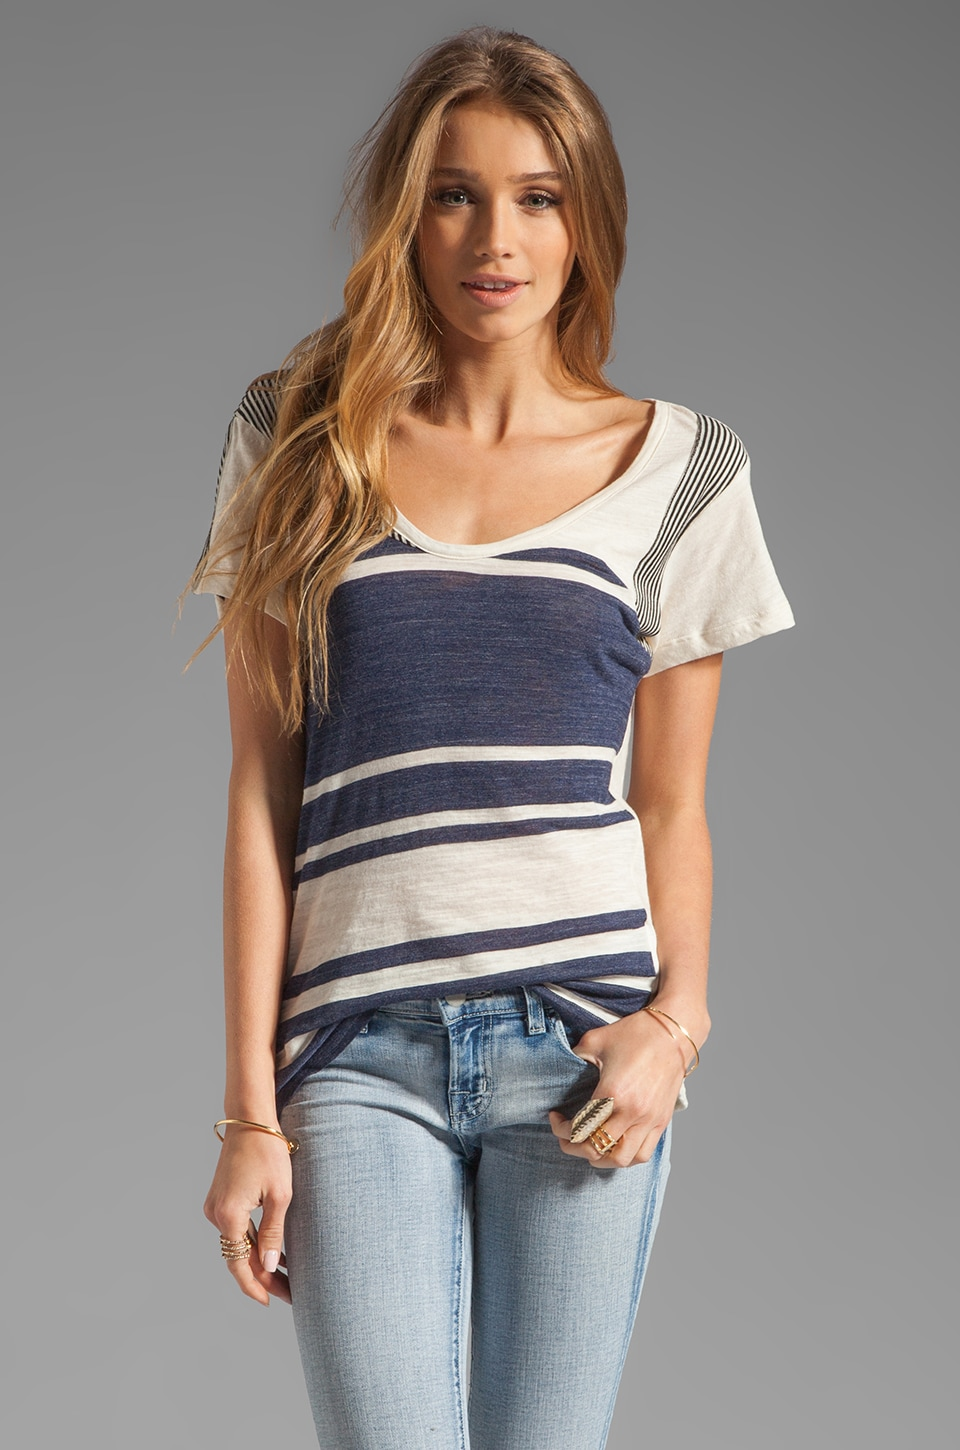 See By Chloe Short Sleeve Striped Tee in Black/Ecru/White